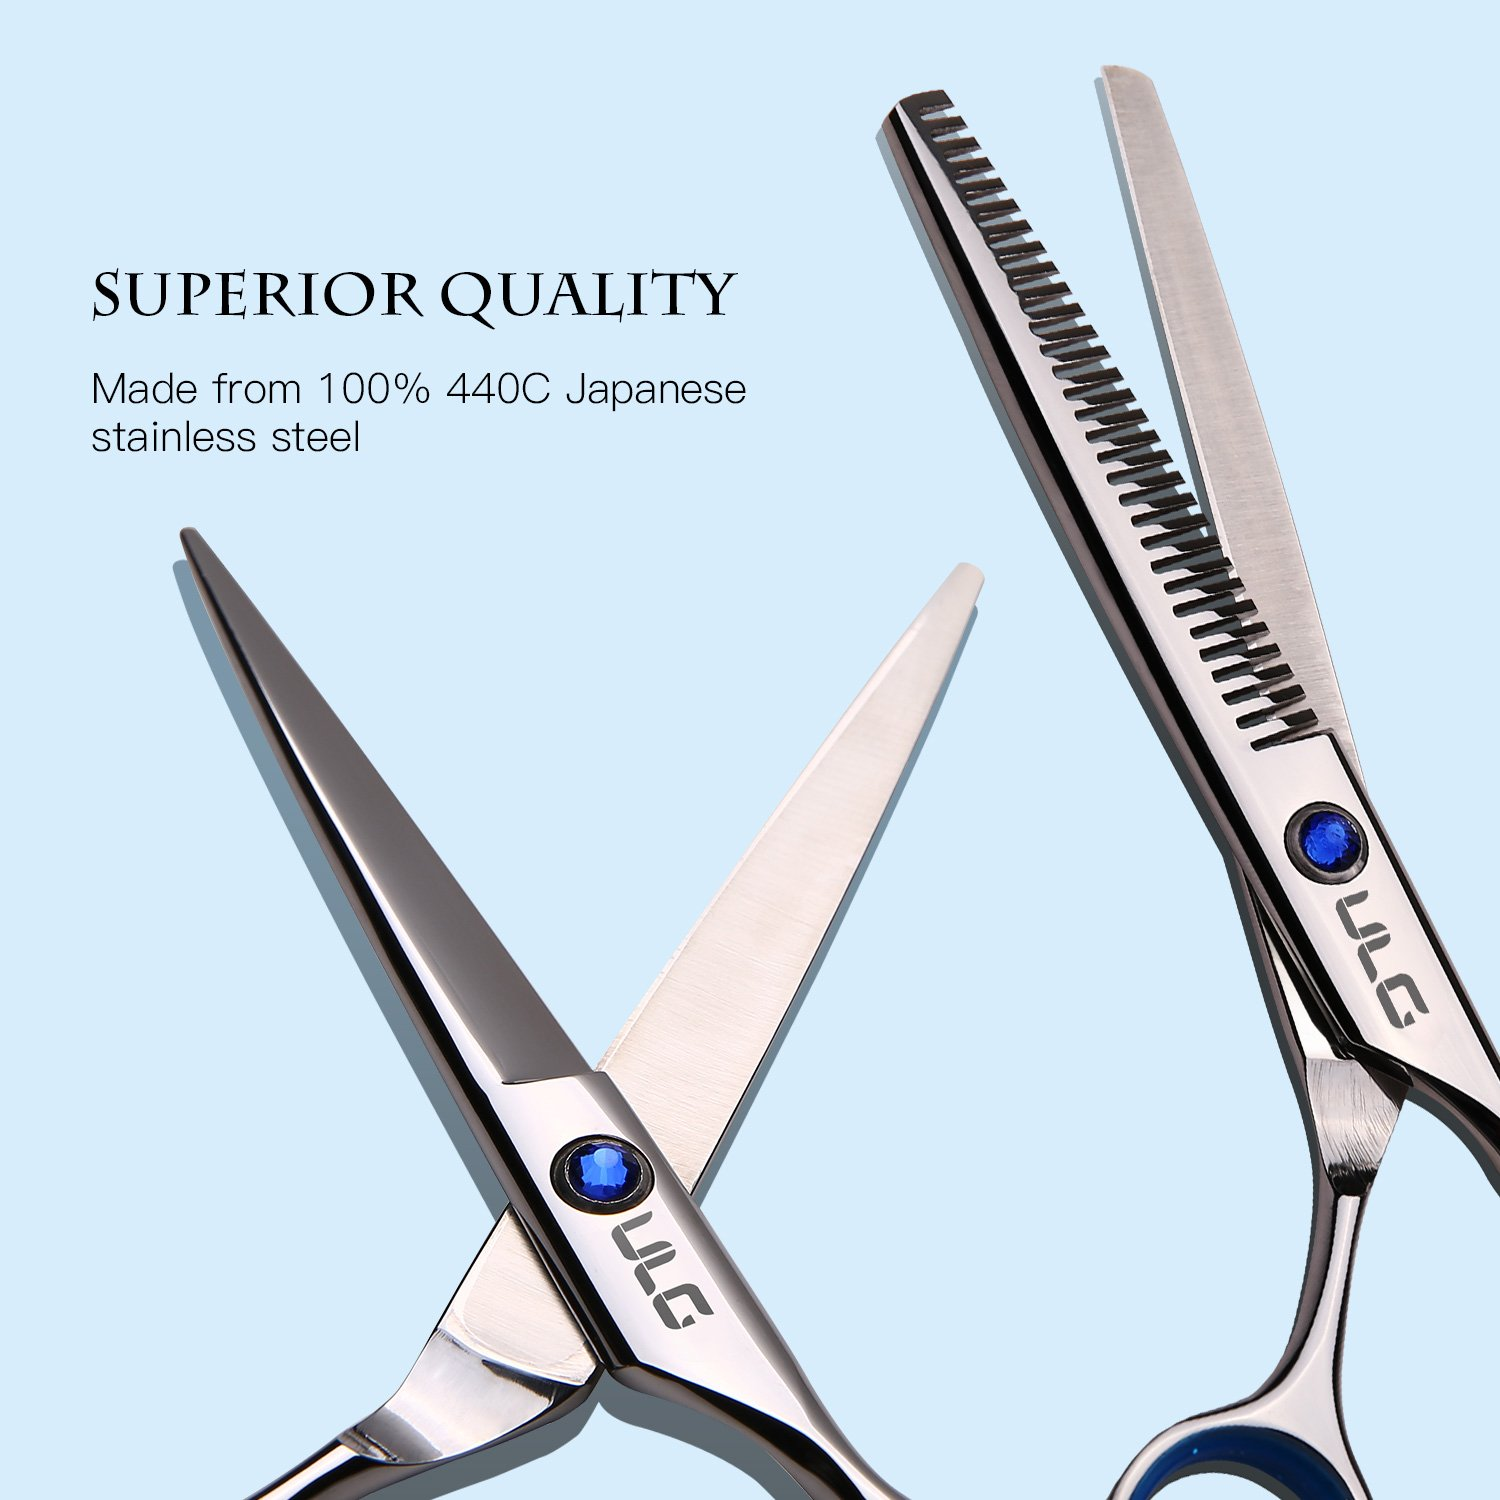 Hair Cutting Scissors Thinning Teeth Shears Set ULG Professional Barber Hairdressing Texturizing Salon Razor Edge Scissor Japanese Stainless Steel 6.5 inch by ULG (Image #2)